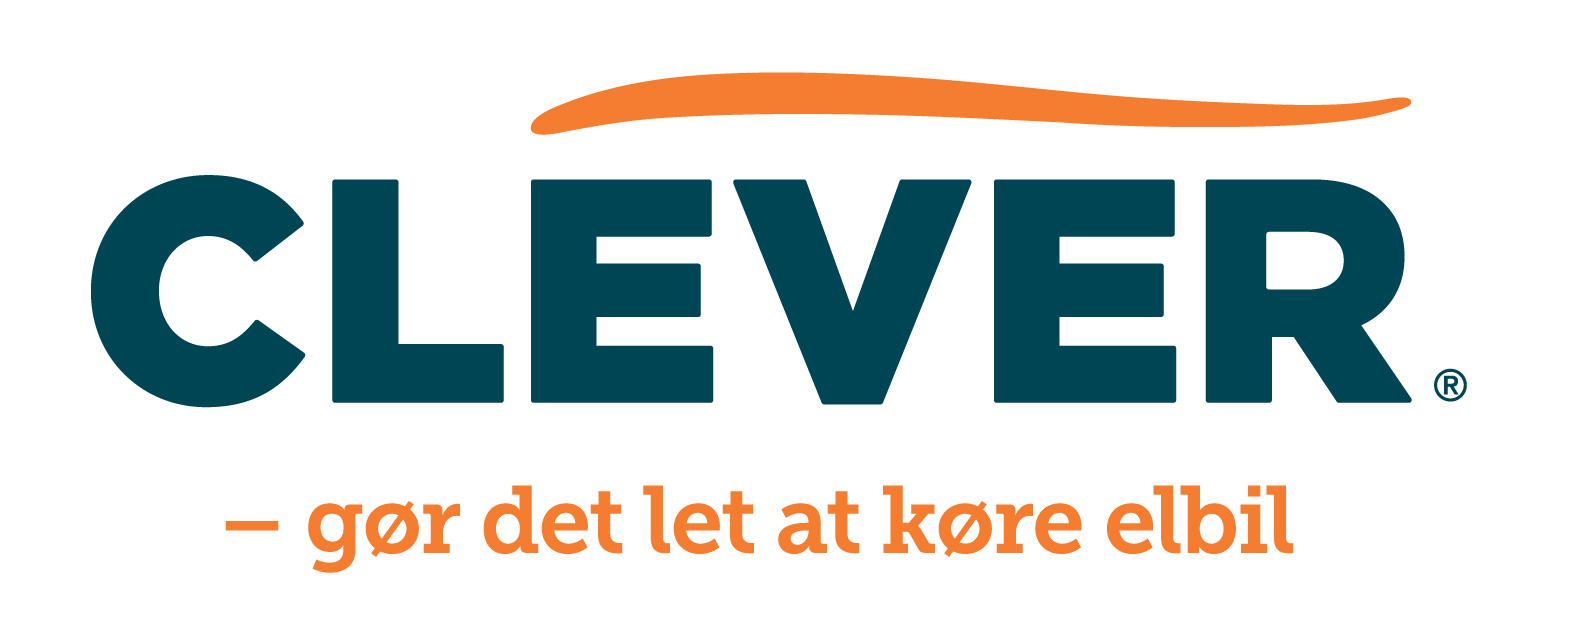 Charge card logo of Clever